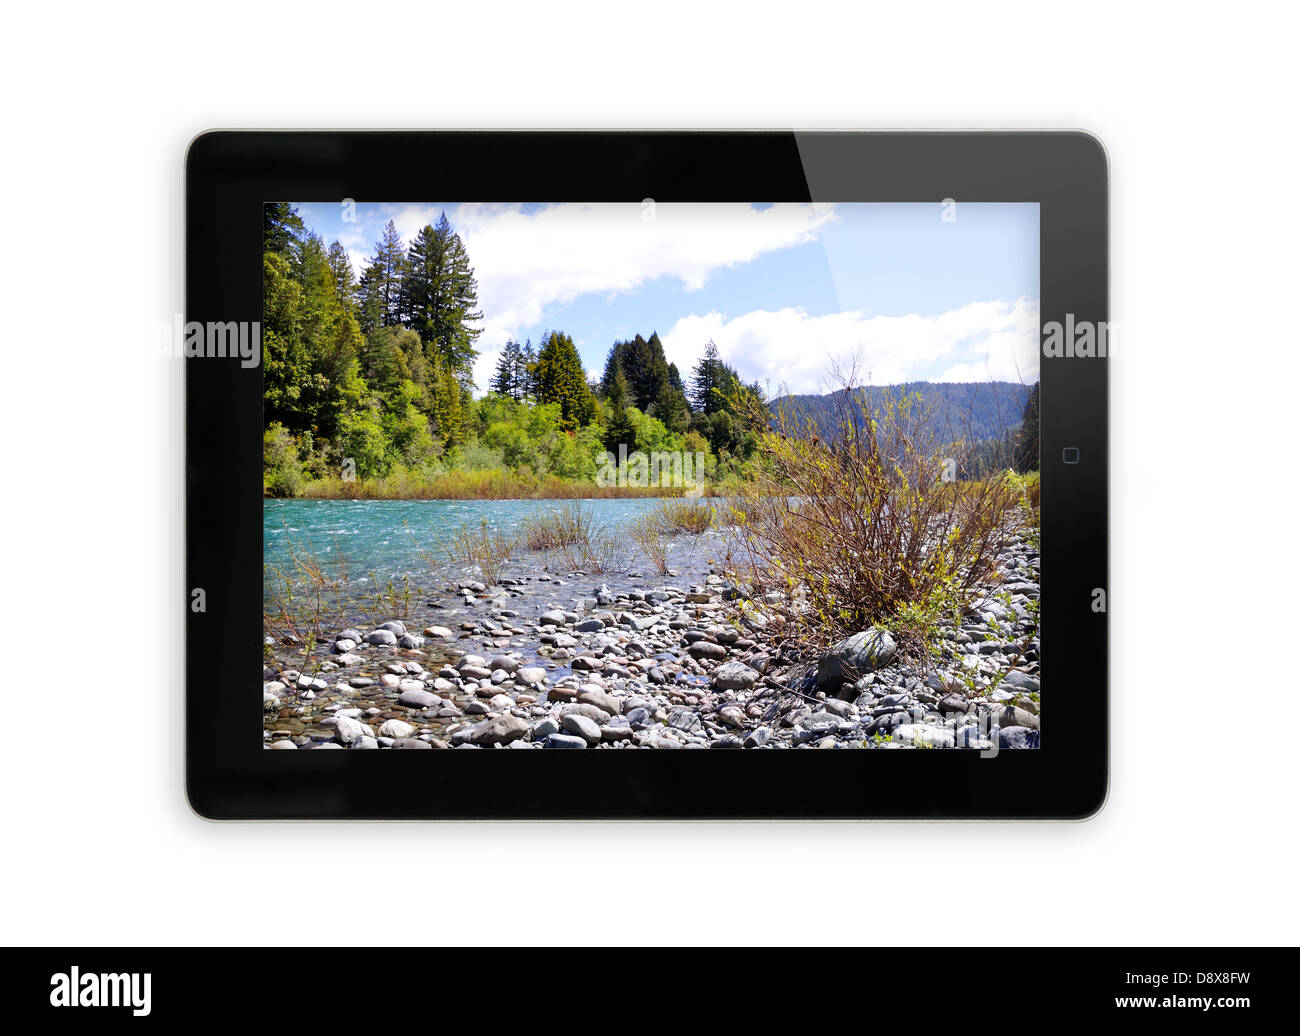 iPad screen showing photo - Stock Image